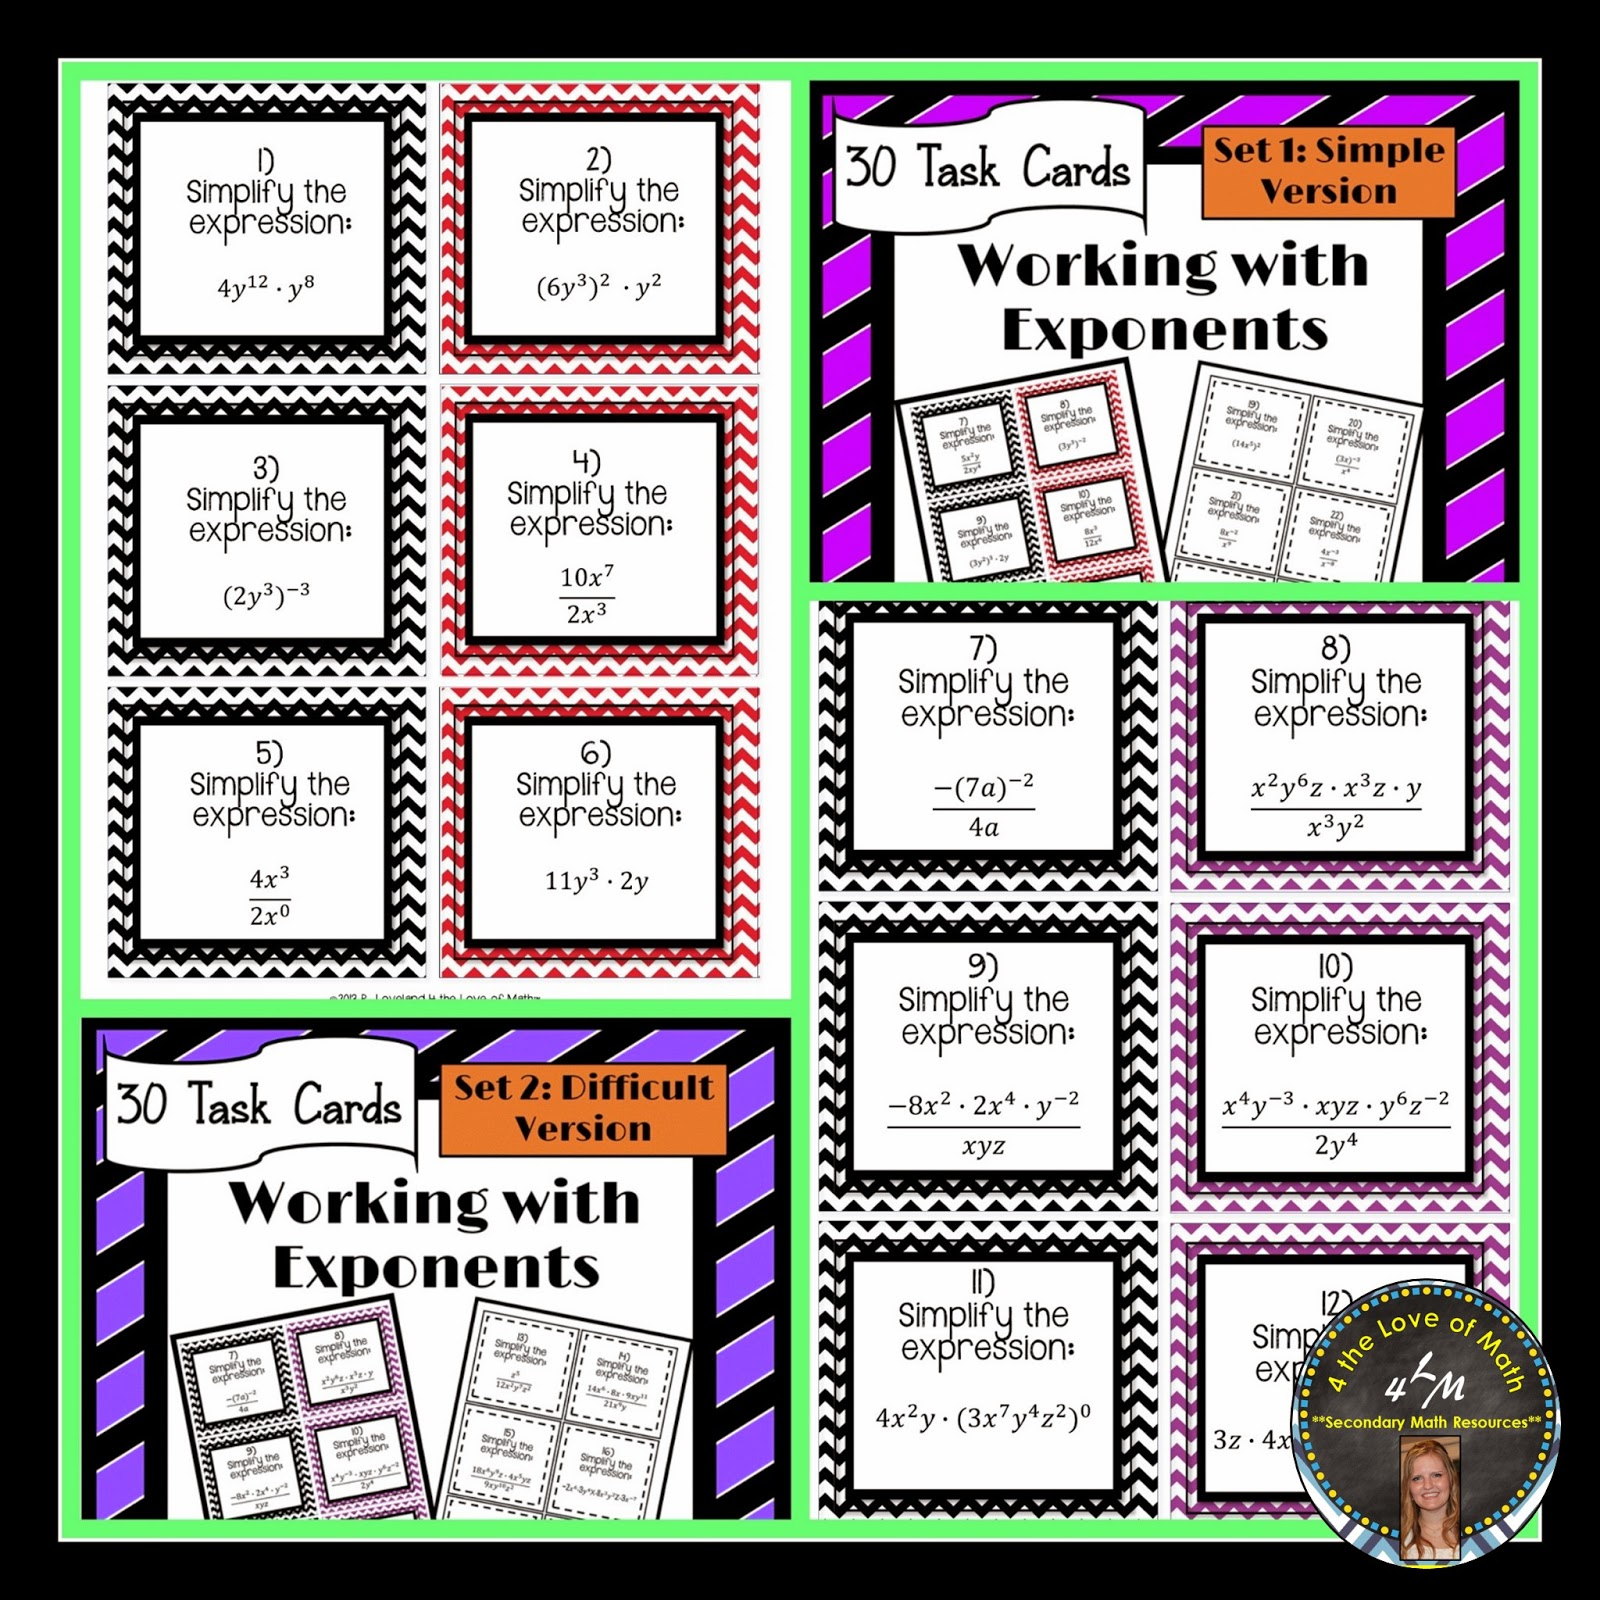 http://www.teacherspayteachers.com/Product/Exponents-30-Task-Cards-Simplifying-Expressions-Using-Exponent-Rules-Set-1-670785